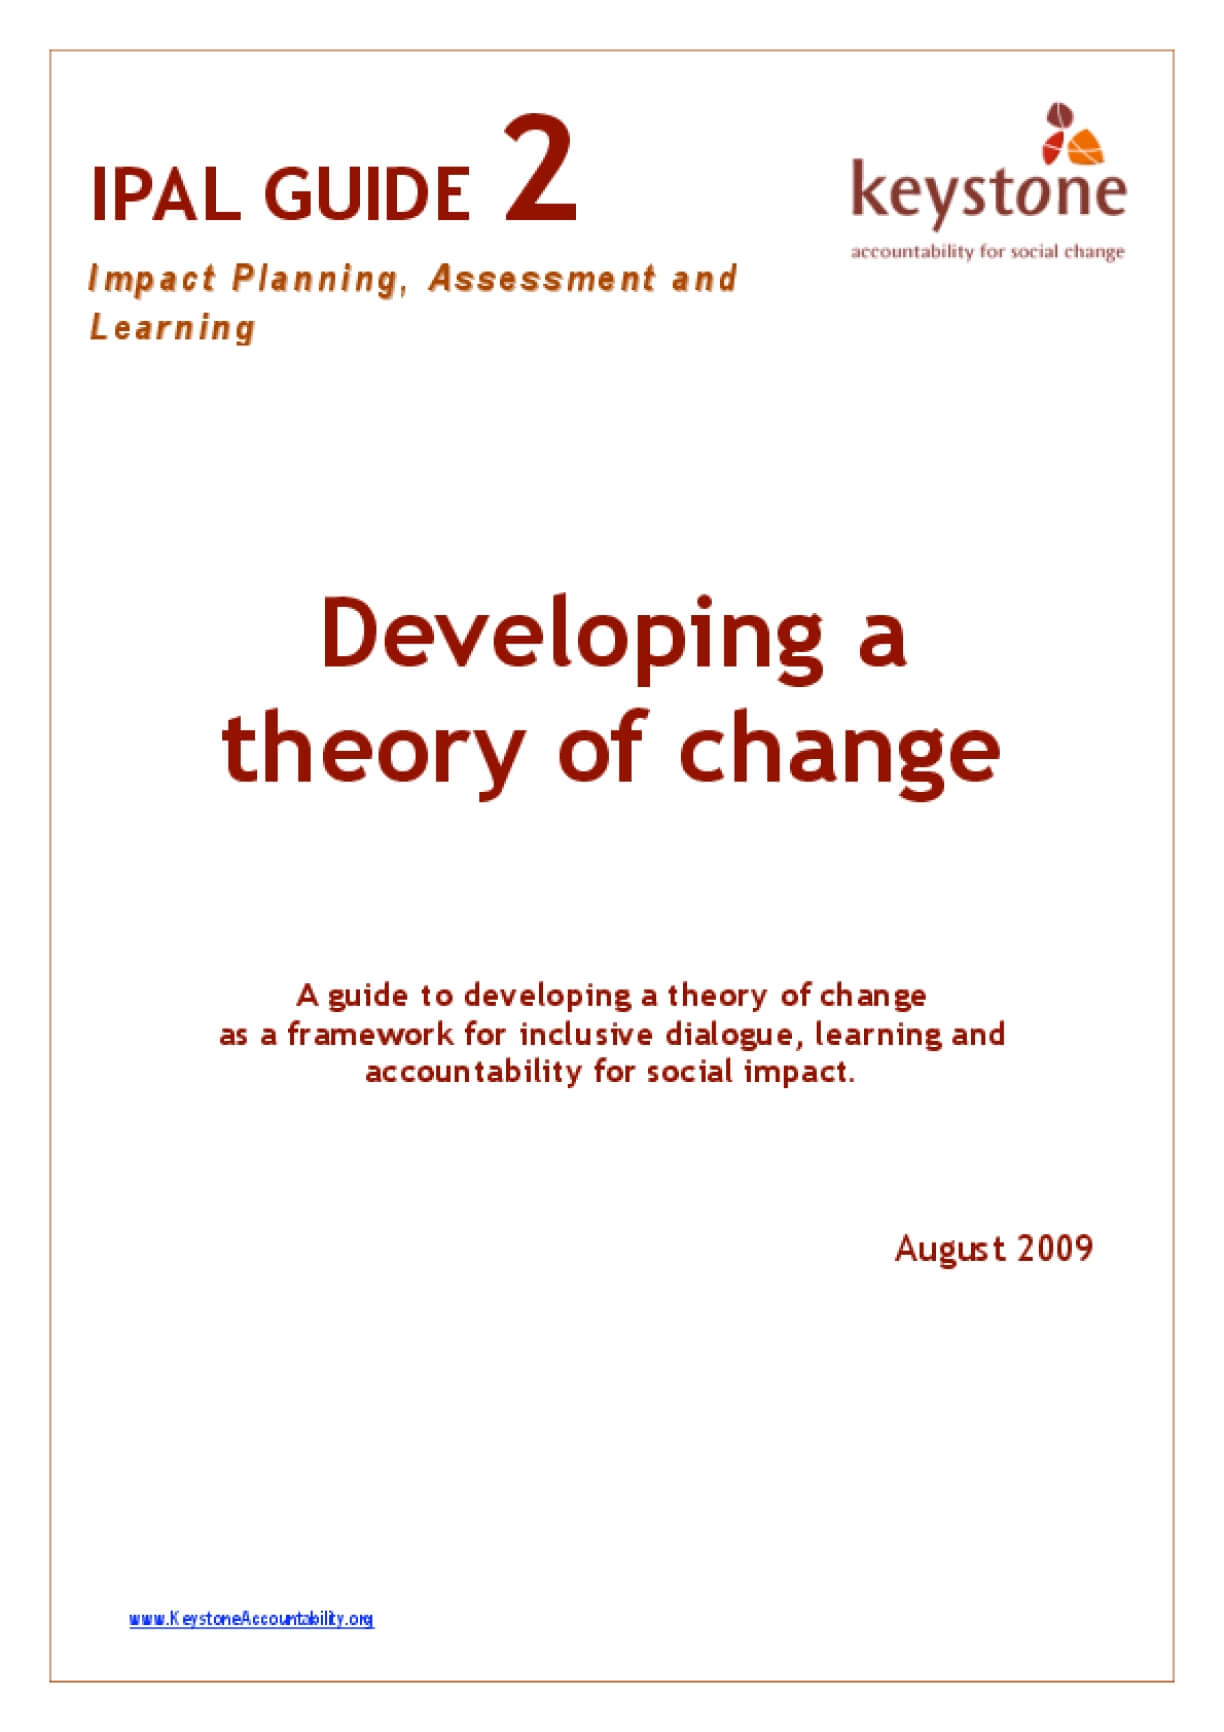 Developing A Theory of Change